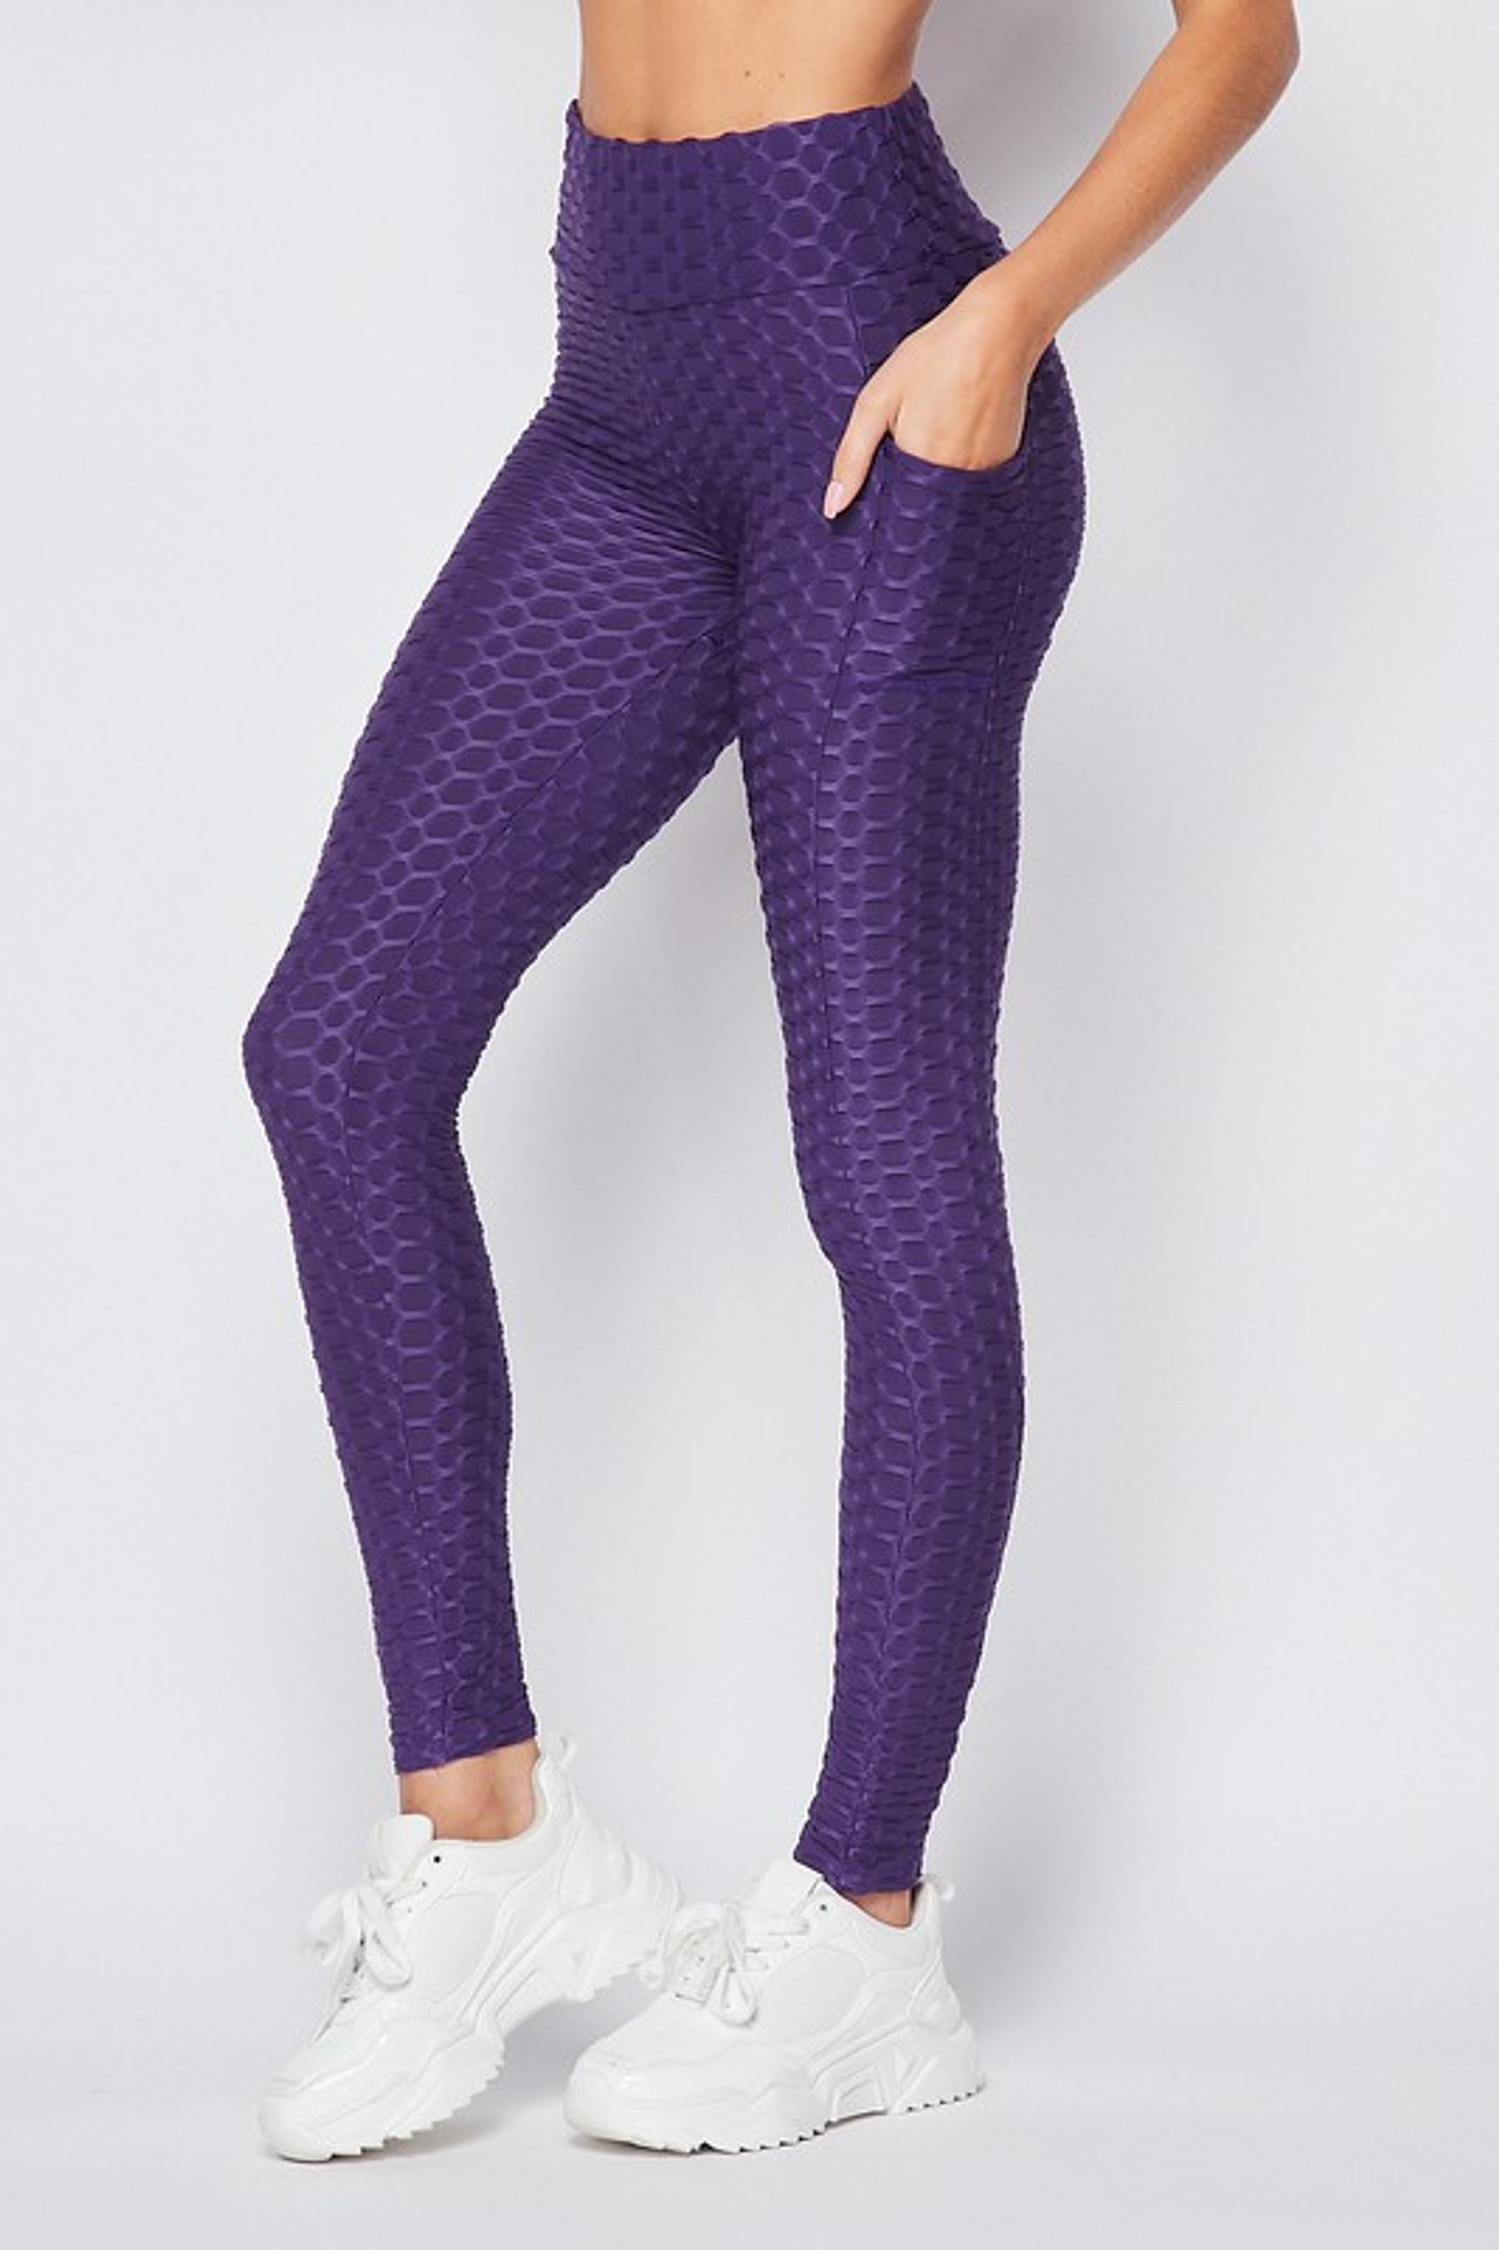 45 degree view of  Purple Scrunch Butt Popcorn Textured High Waisted Leggings with Pockets - Zinati (W&J)